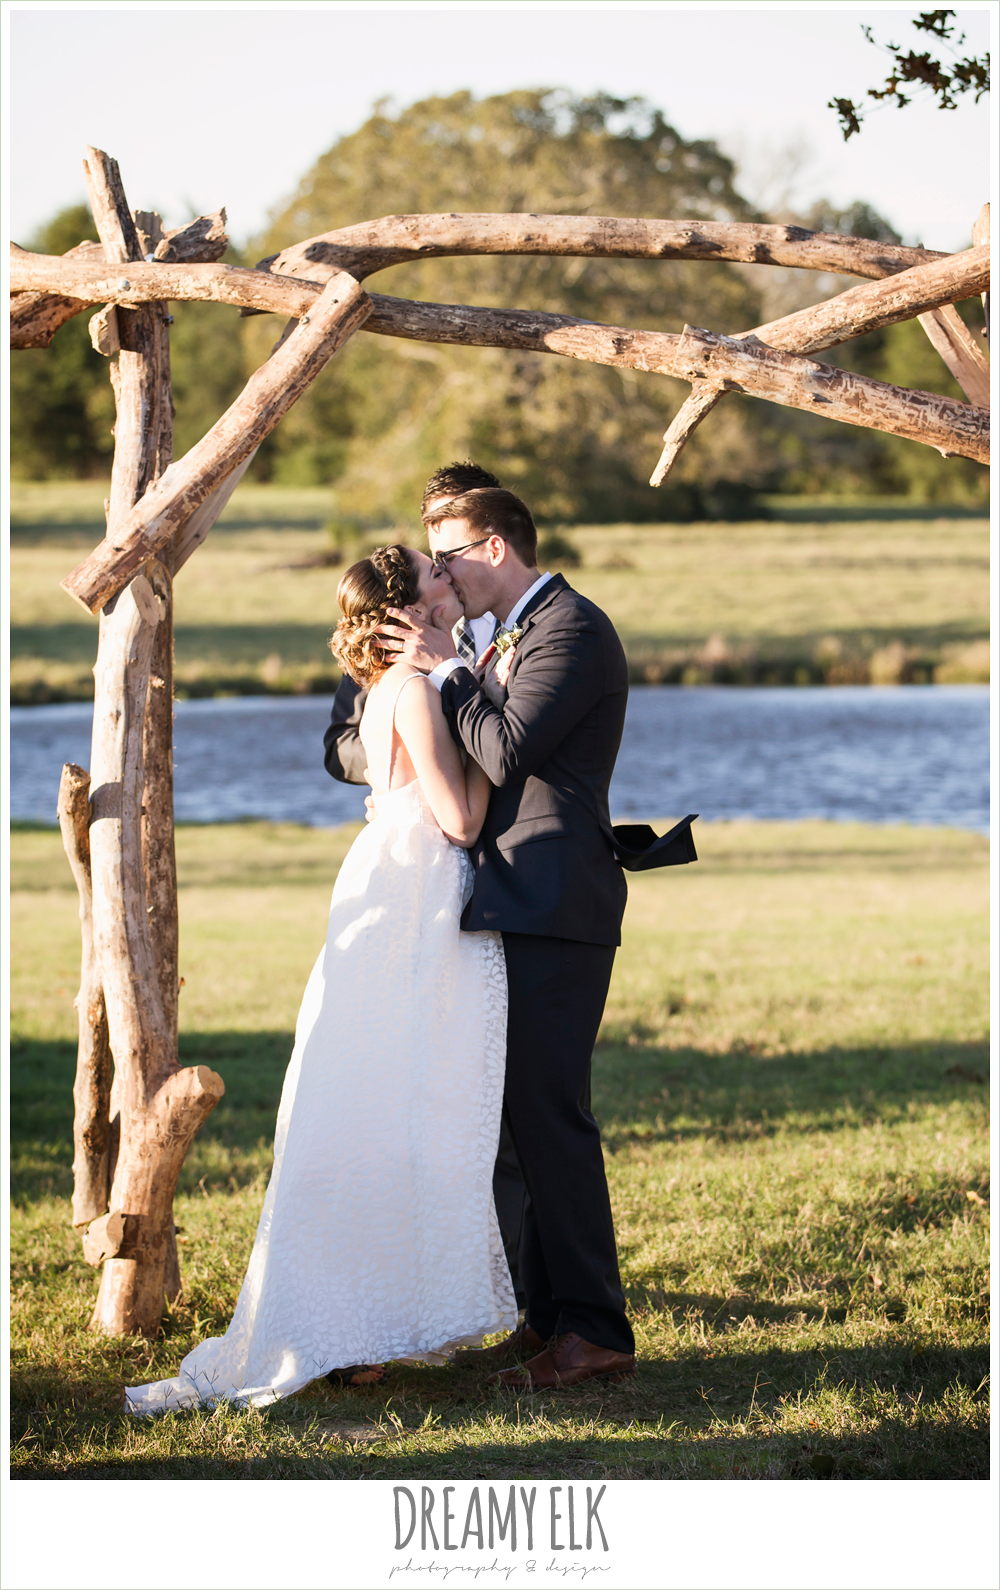 bride and groom kissing, outdoor fall wedding ceremony, rustic chic wedding photo, the amish barn at edge {dreamy elk photography and design}